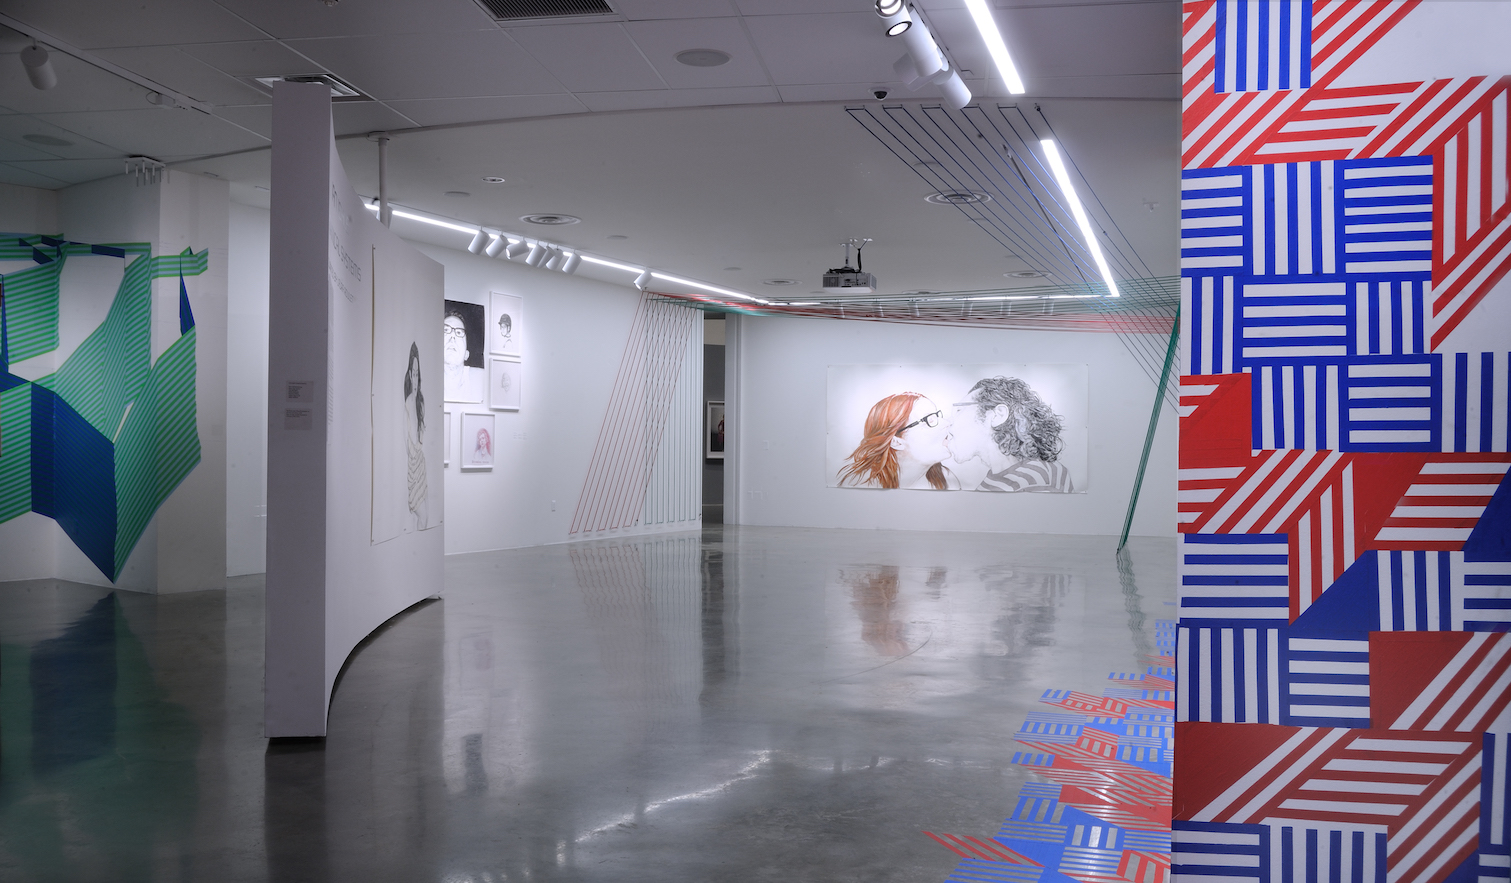 Installation view of multimedia exhibition with portraiture and bungee cords